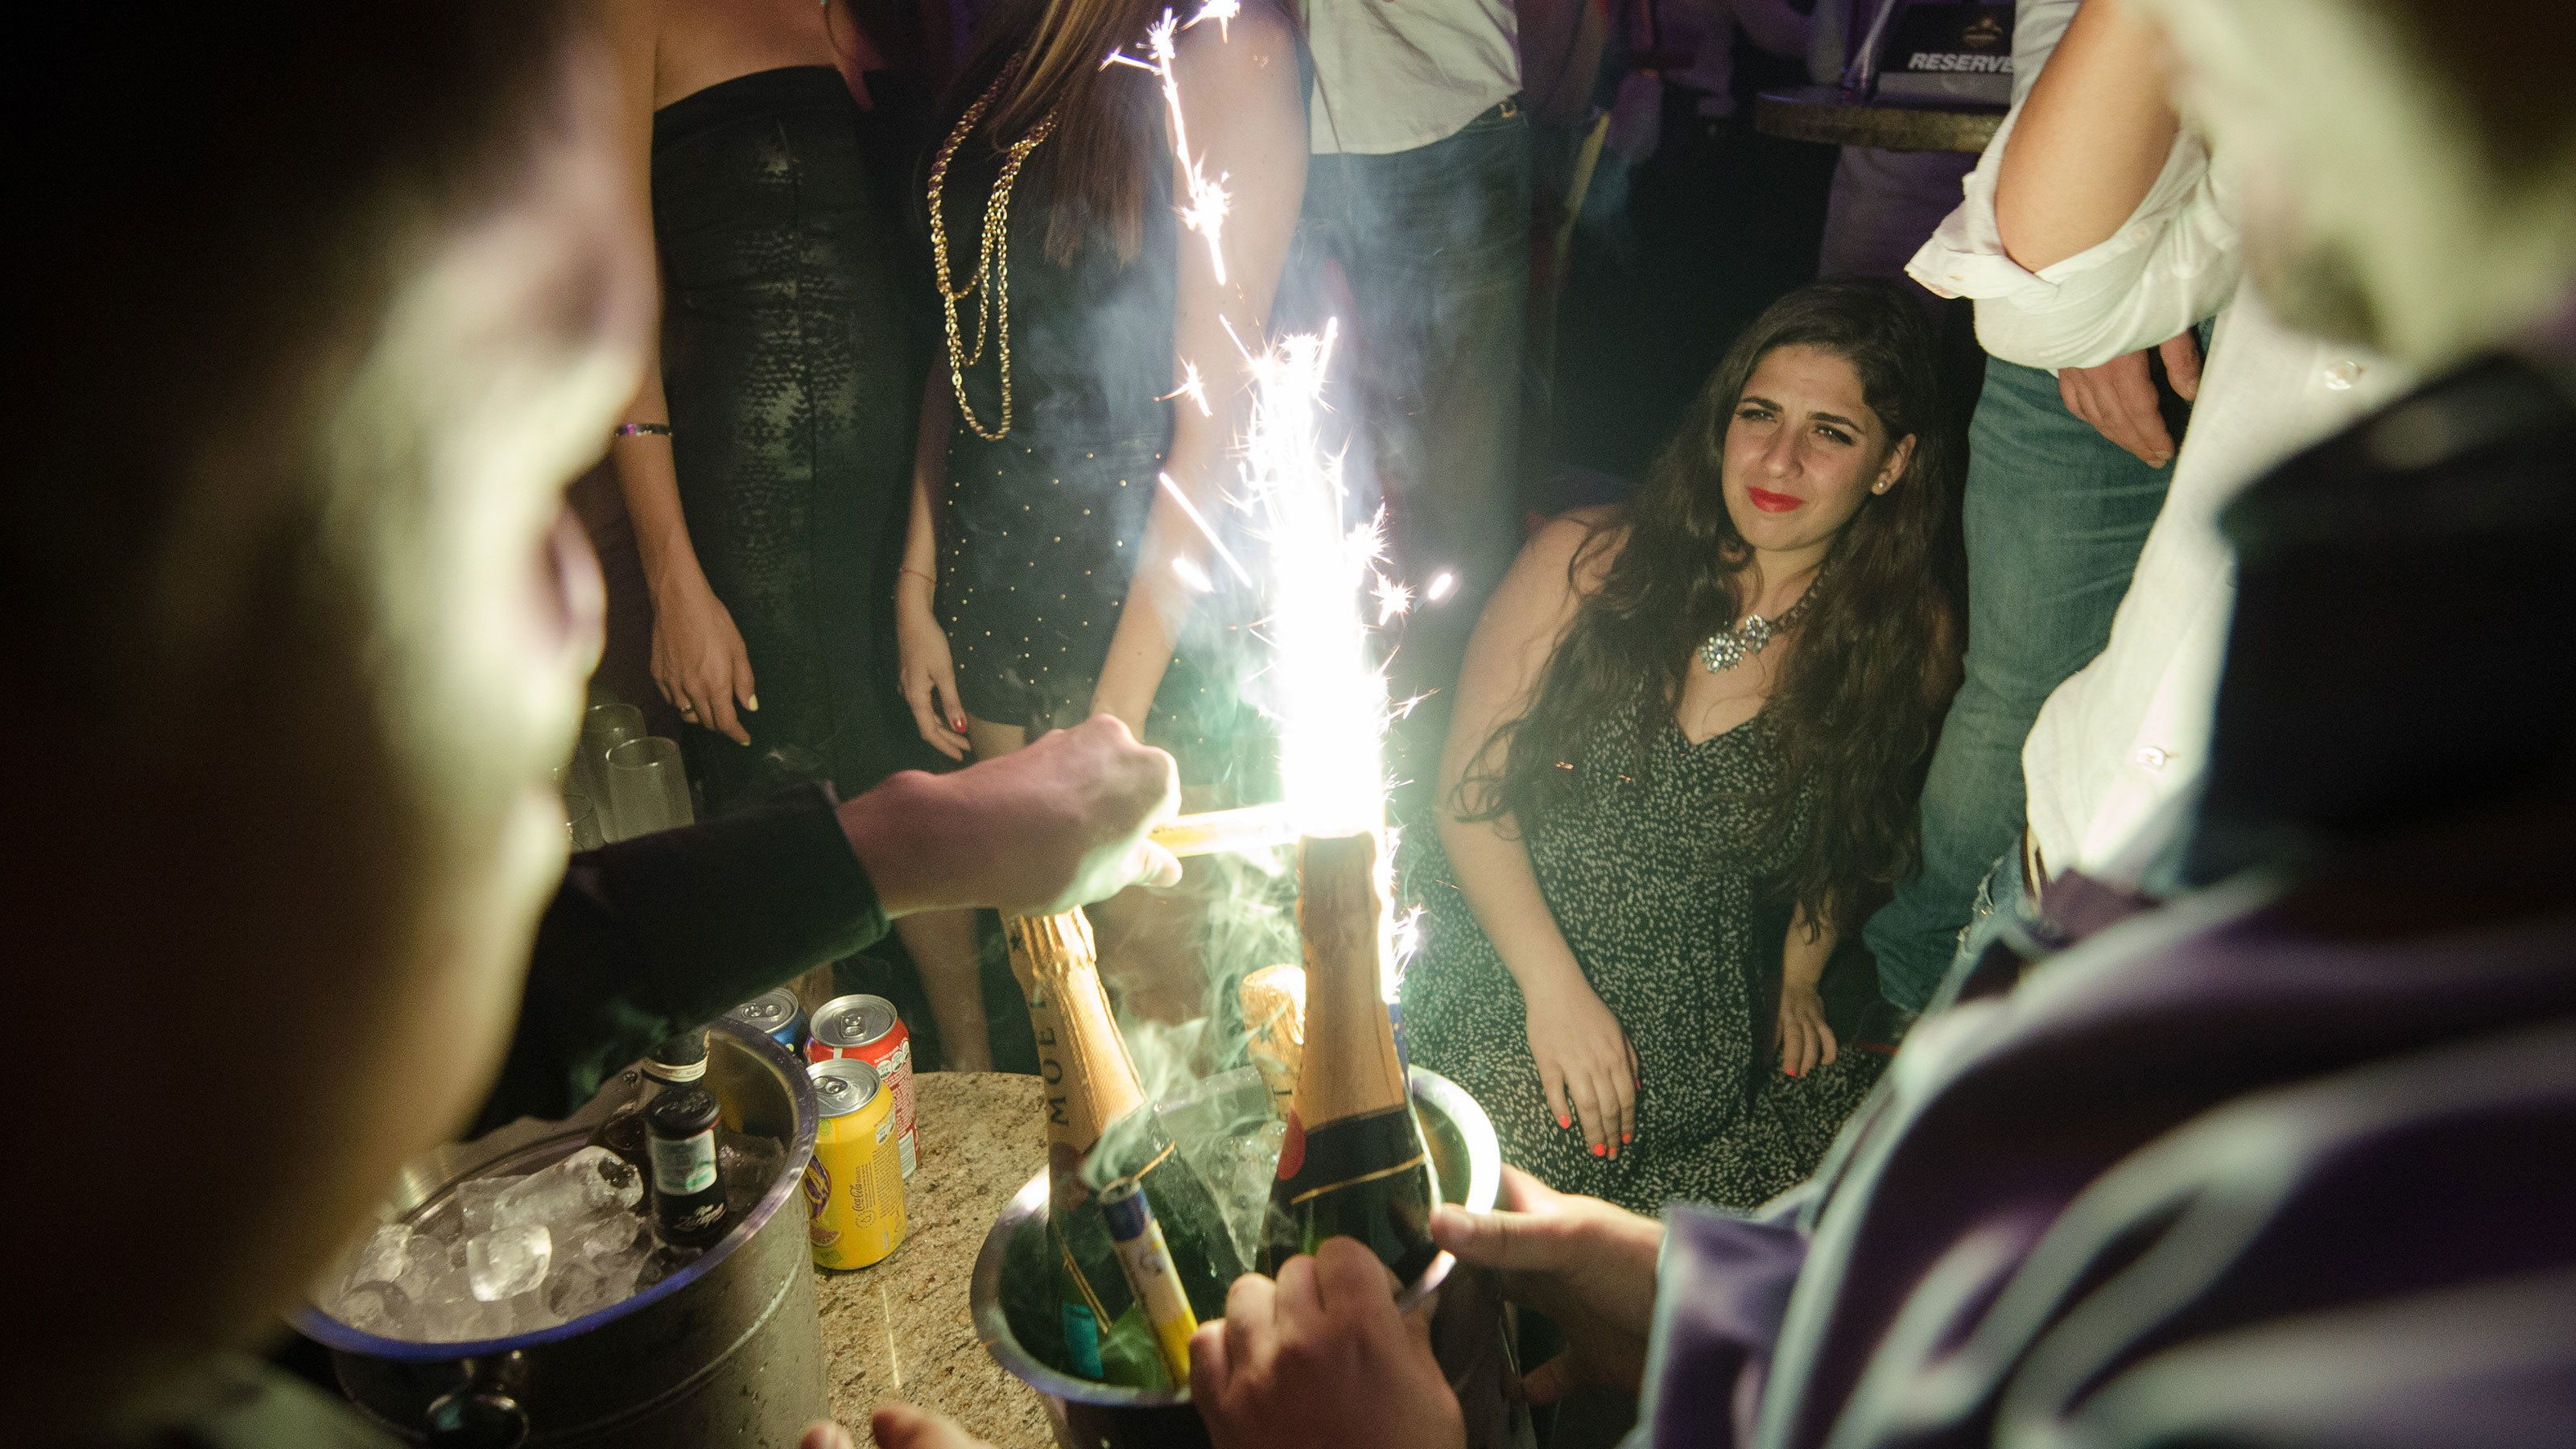 Sparklers being lit over glasses of champagne.